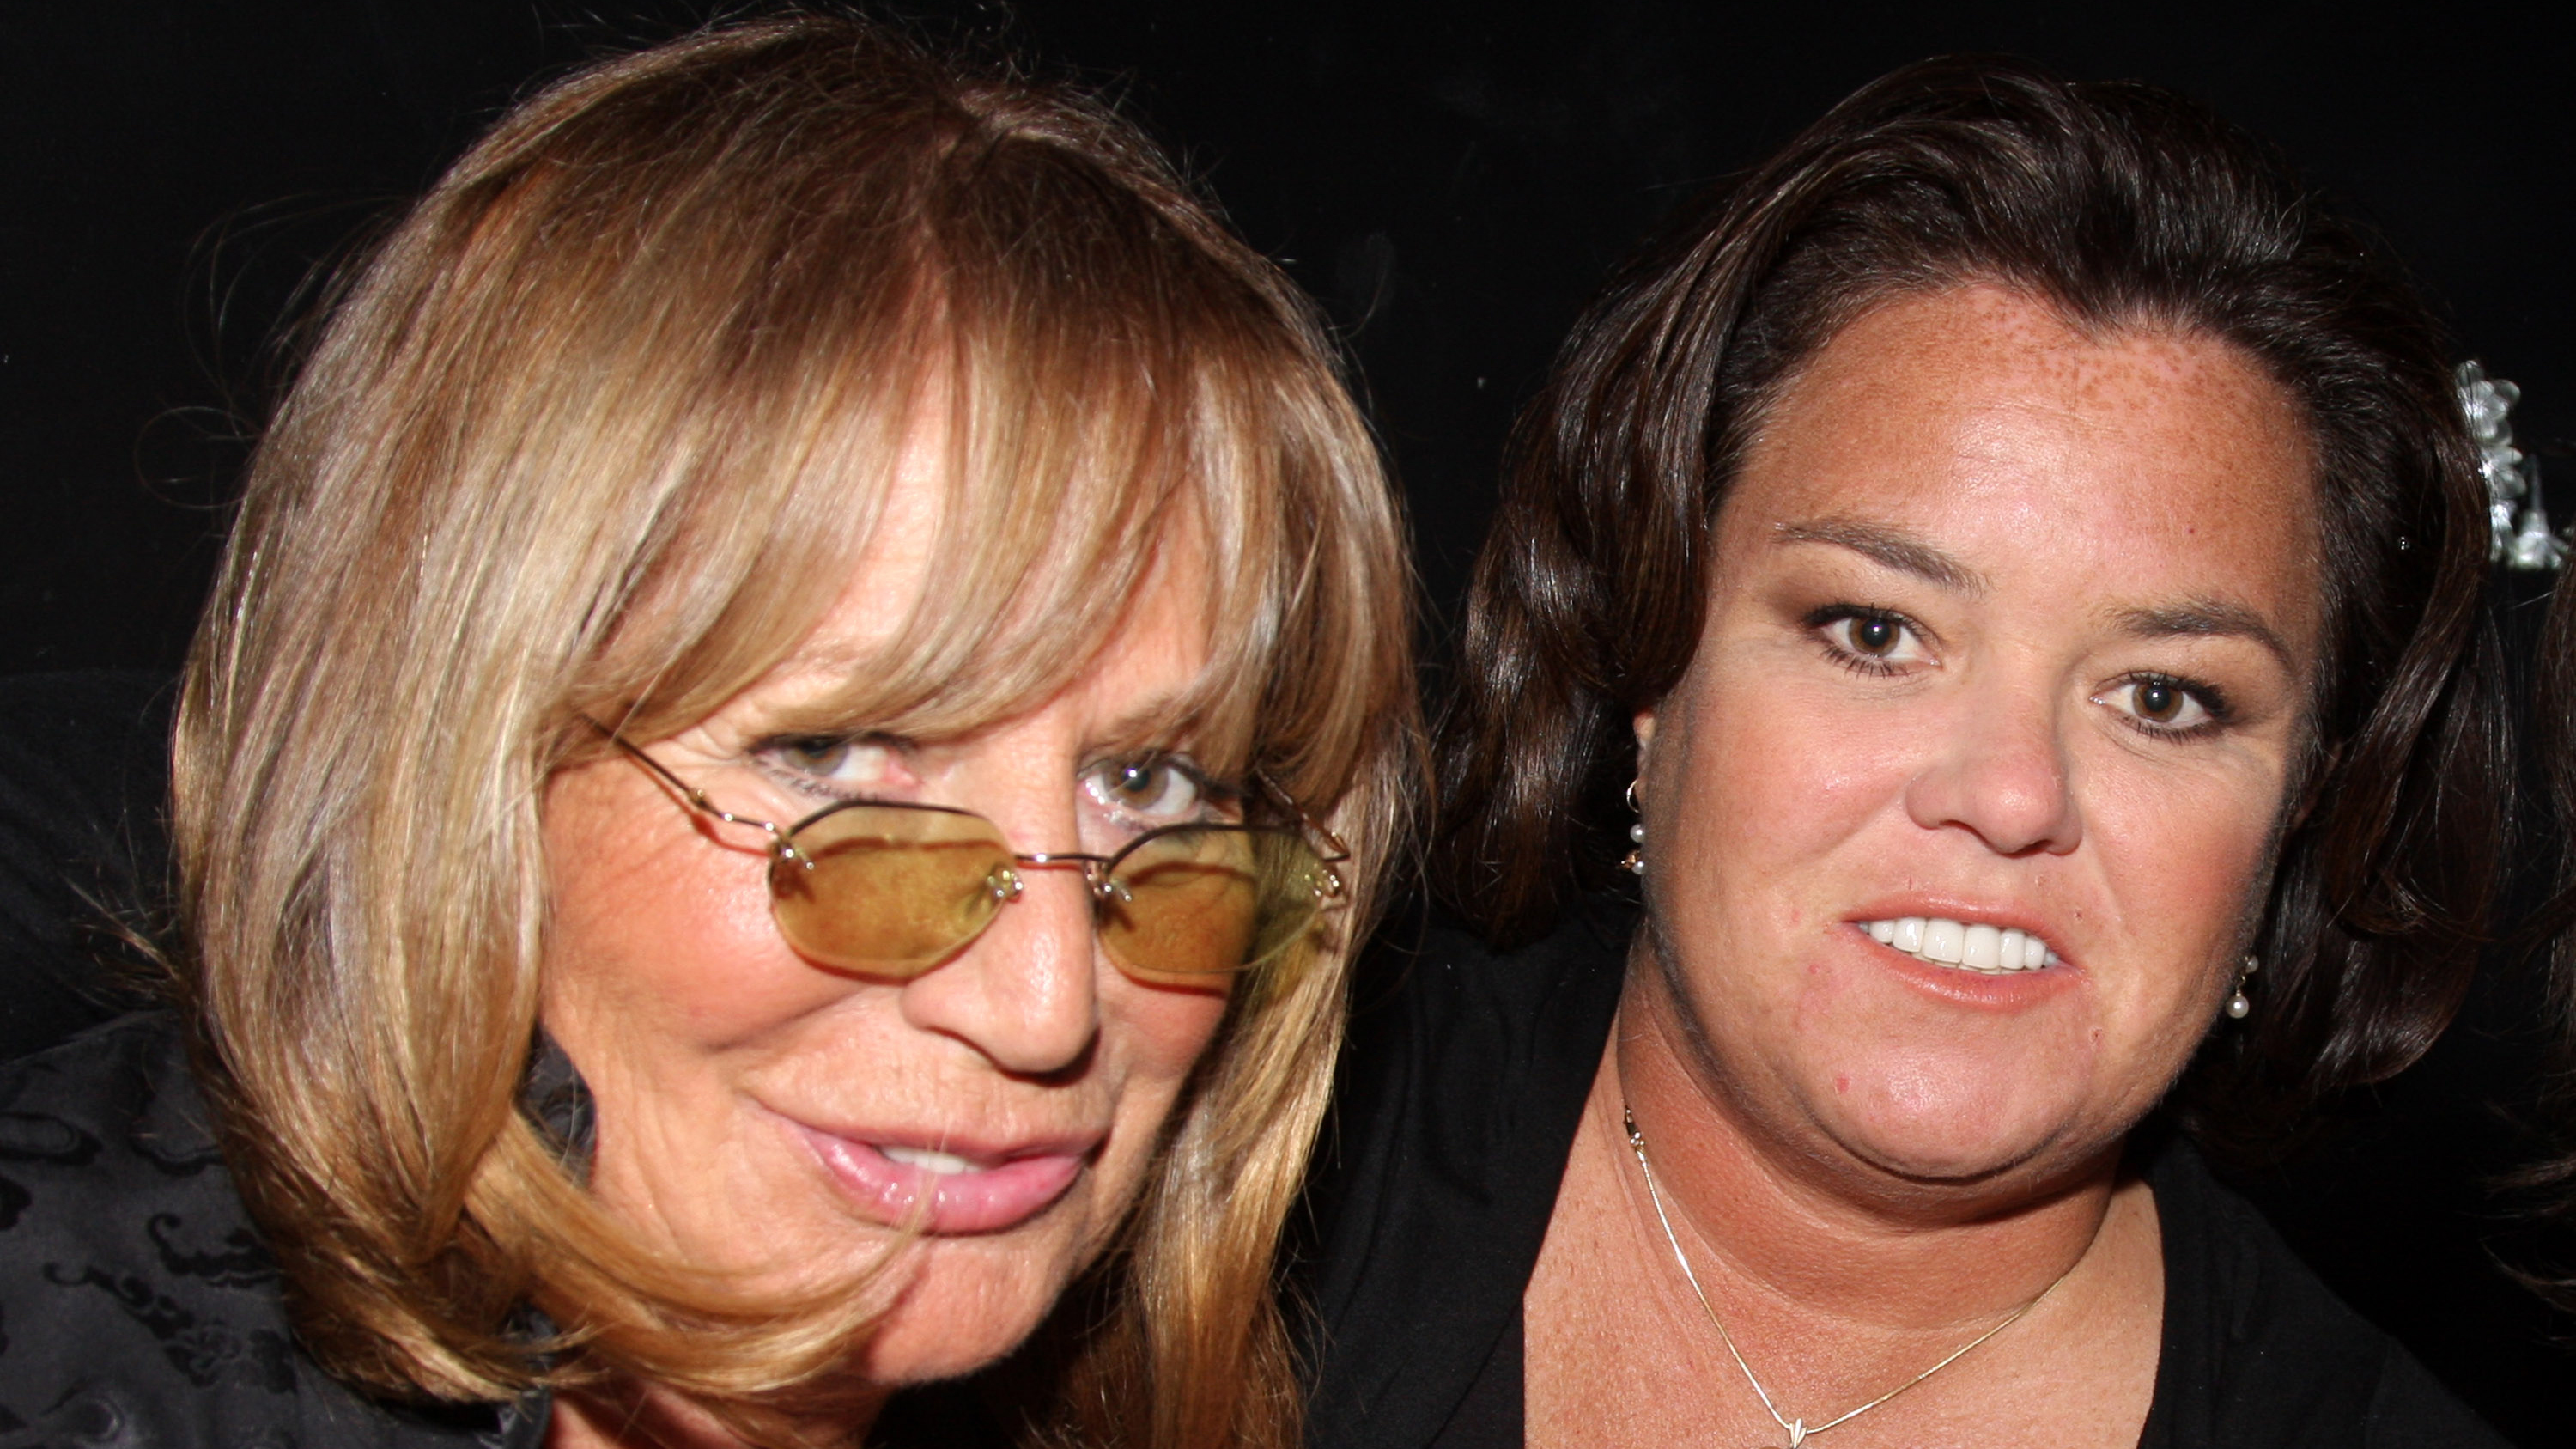 Rosie O'Donnell Pays Tribute to Her Late Friend Penny Marshall: 'She Really Helped Me Throughout My Career'